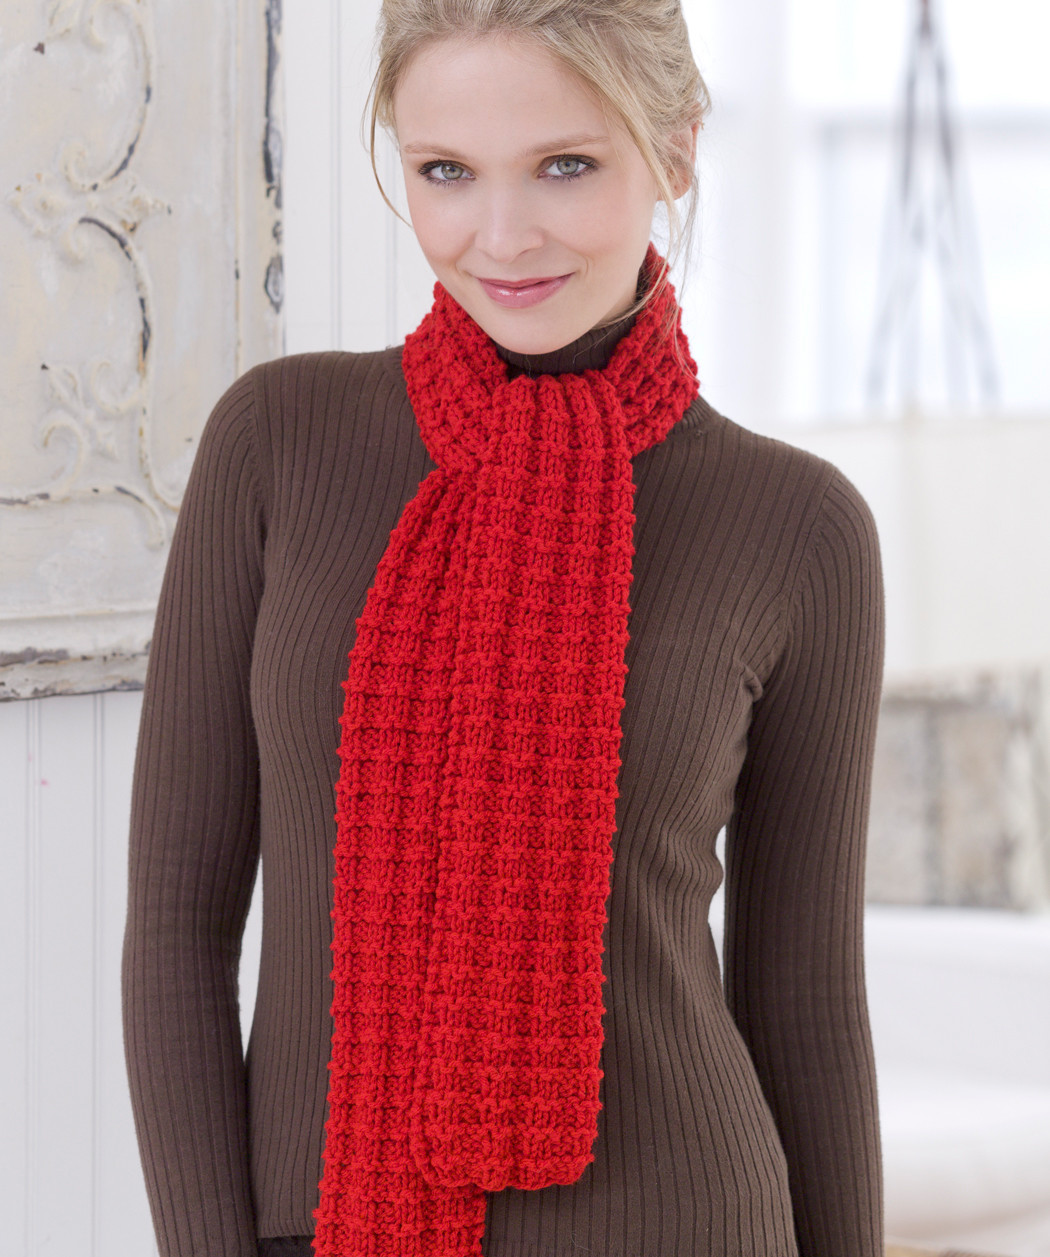 Easy Scarf Knitting Patterns Luxury Simple Knit Scarf Patterns Of Attractive 48 Ideas Easy Scarf Knitting Patterns